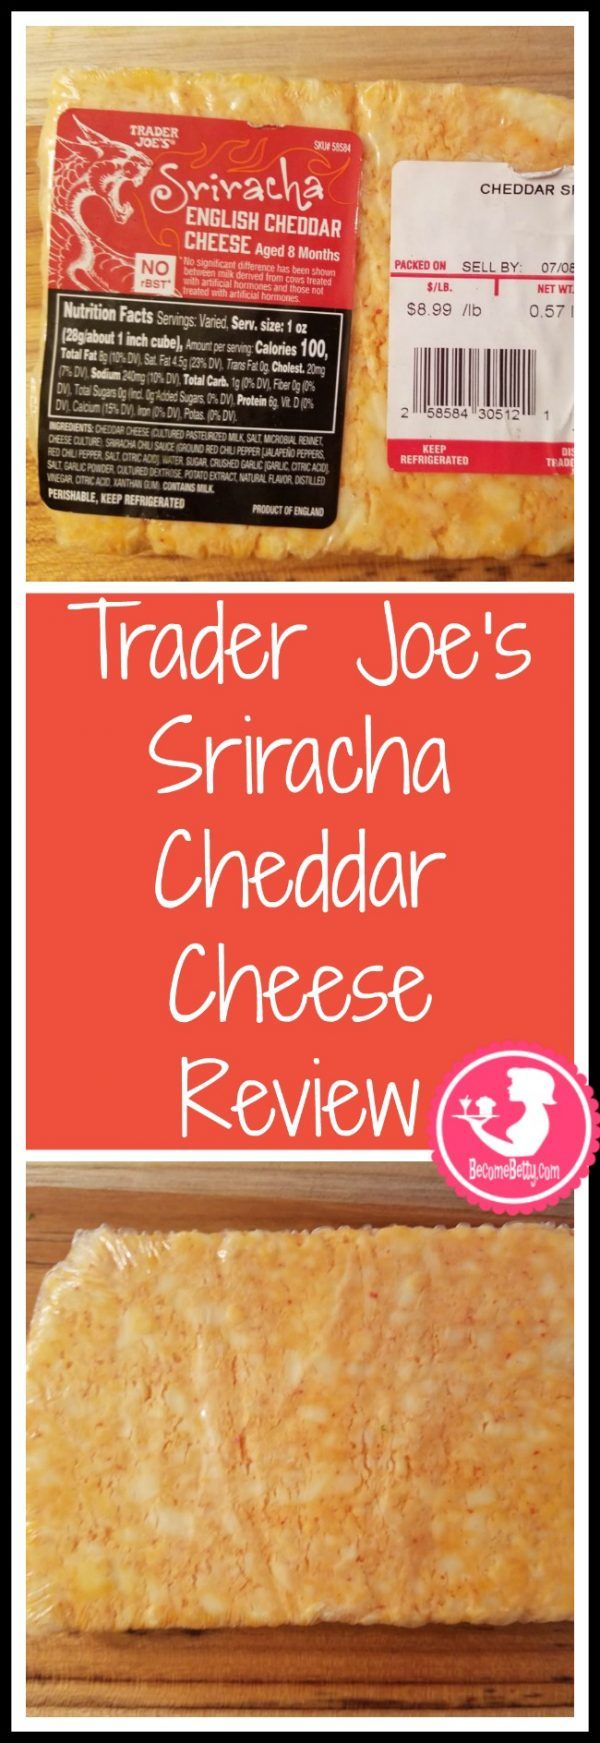 Trader Joe S Sriracha English Cheddar Cheese Cottage Cheese Nutrition Coconut Milk Nutrition Watermelon Nutrition Facts